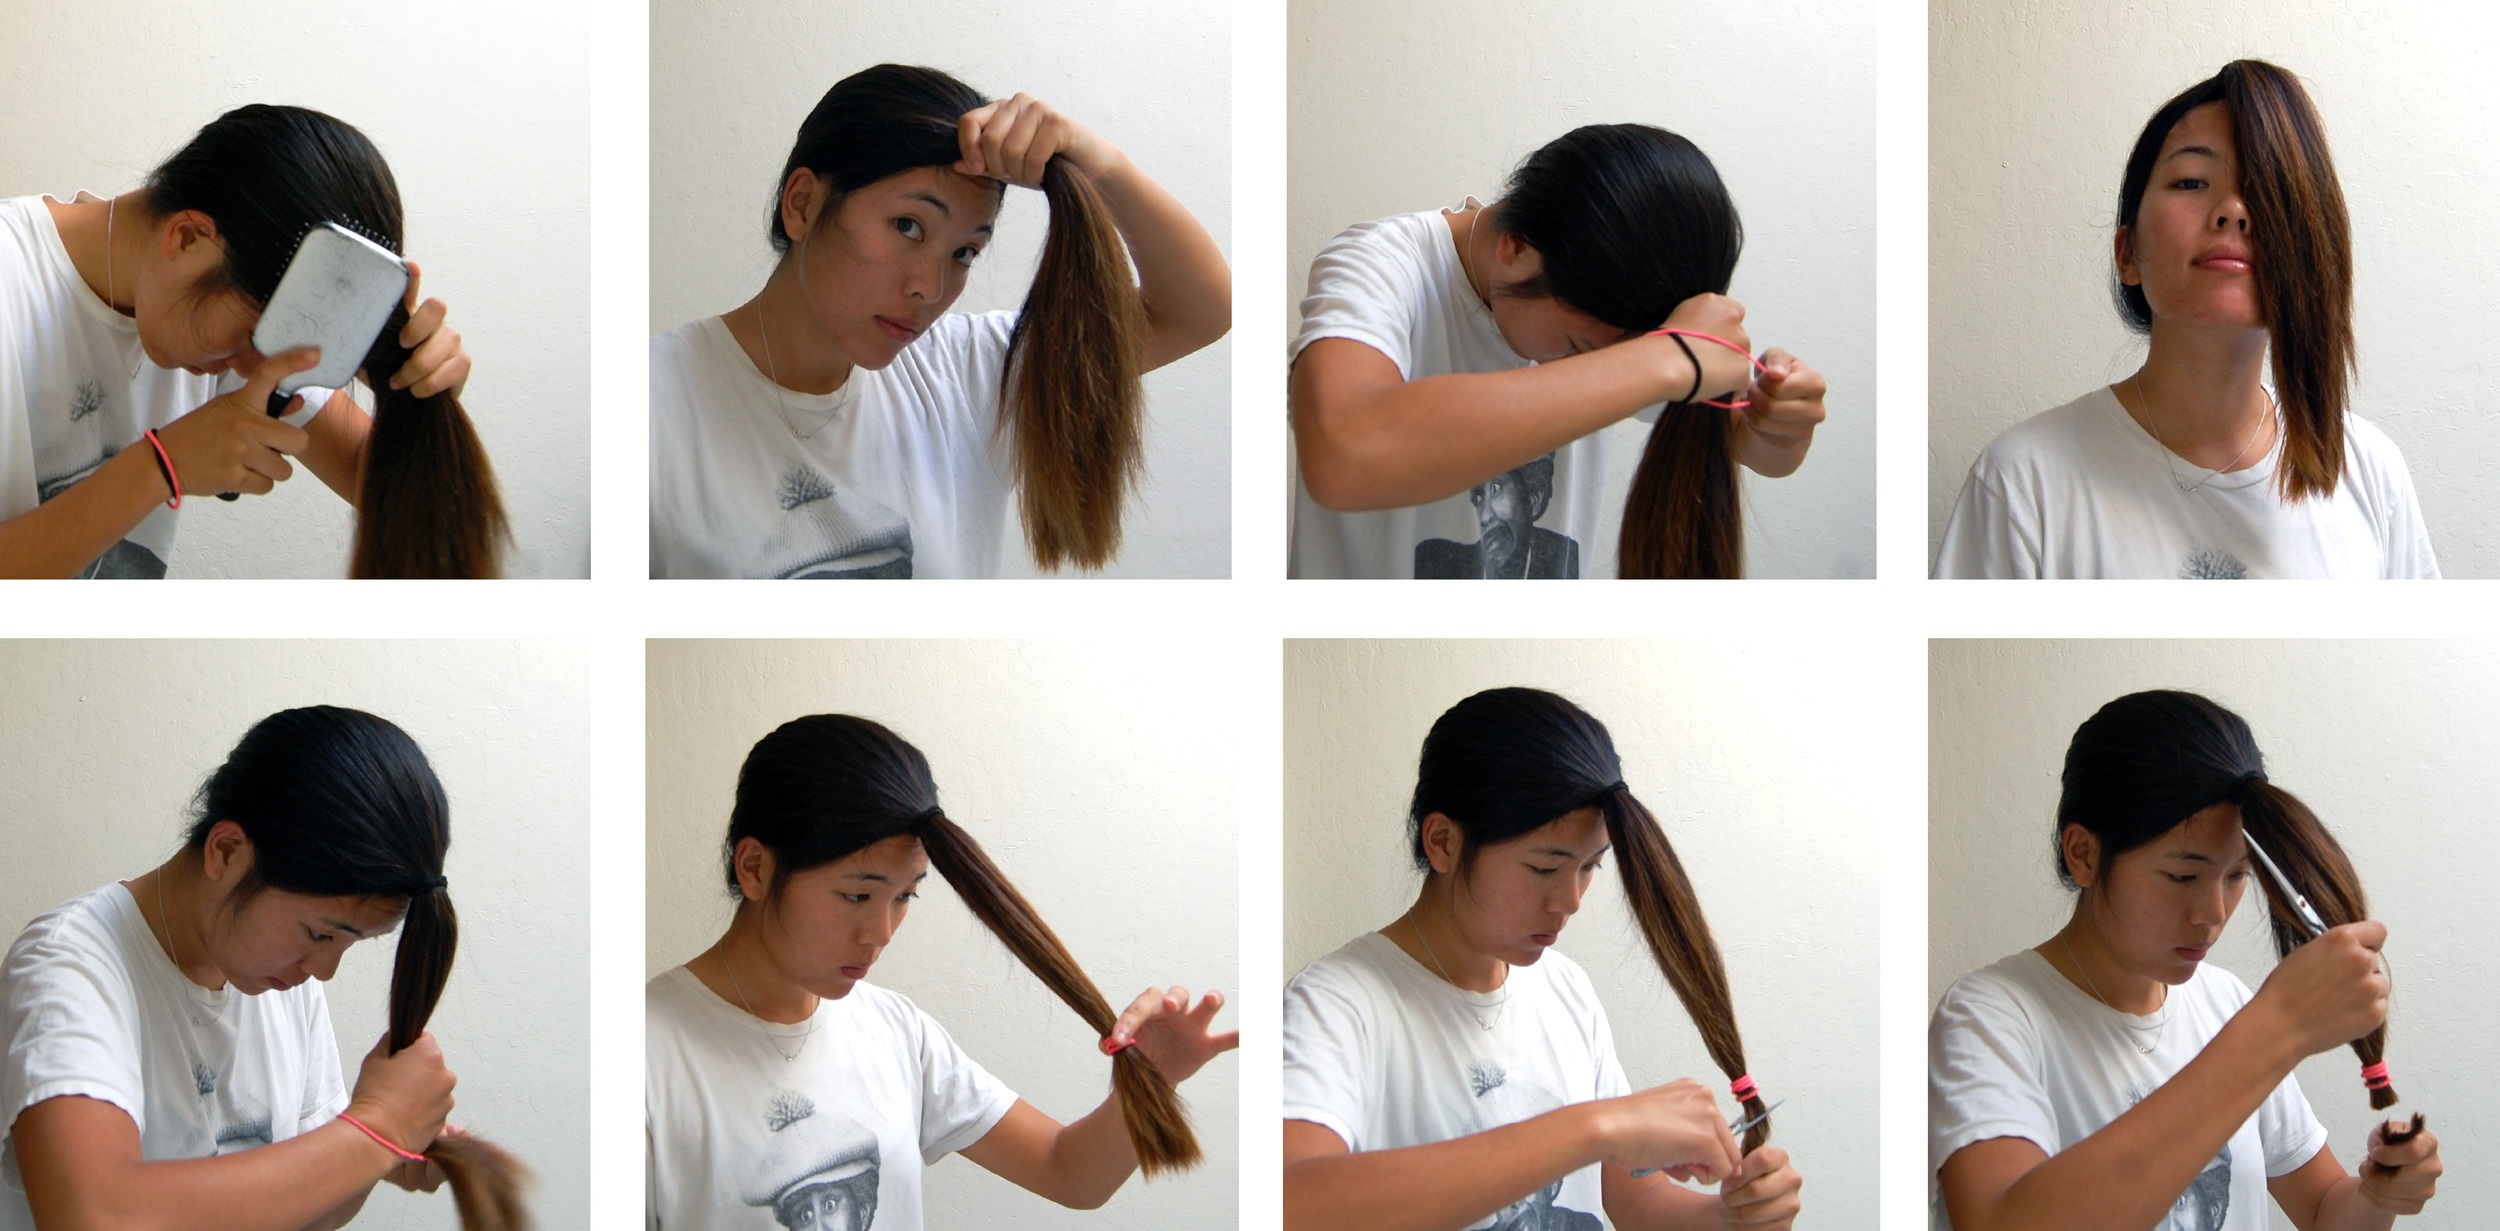 A DIY Layered Haircut How to cut your hair at home!